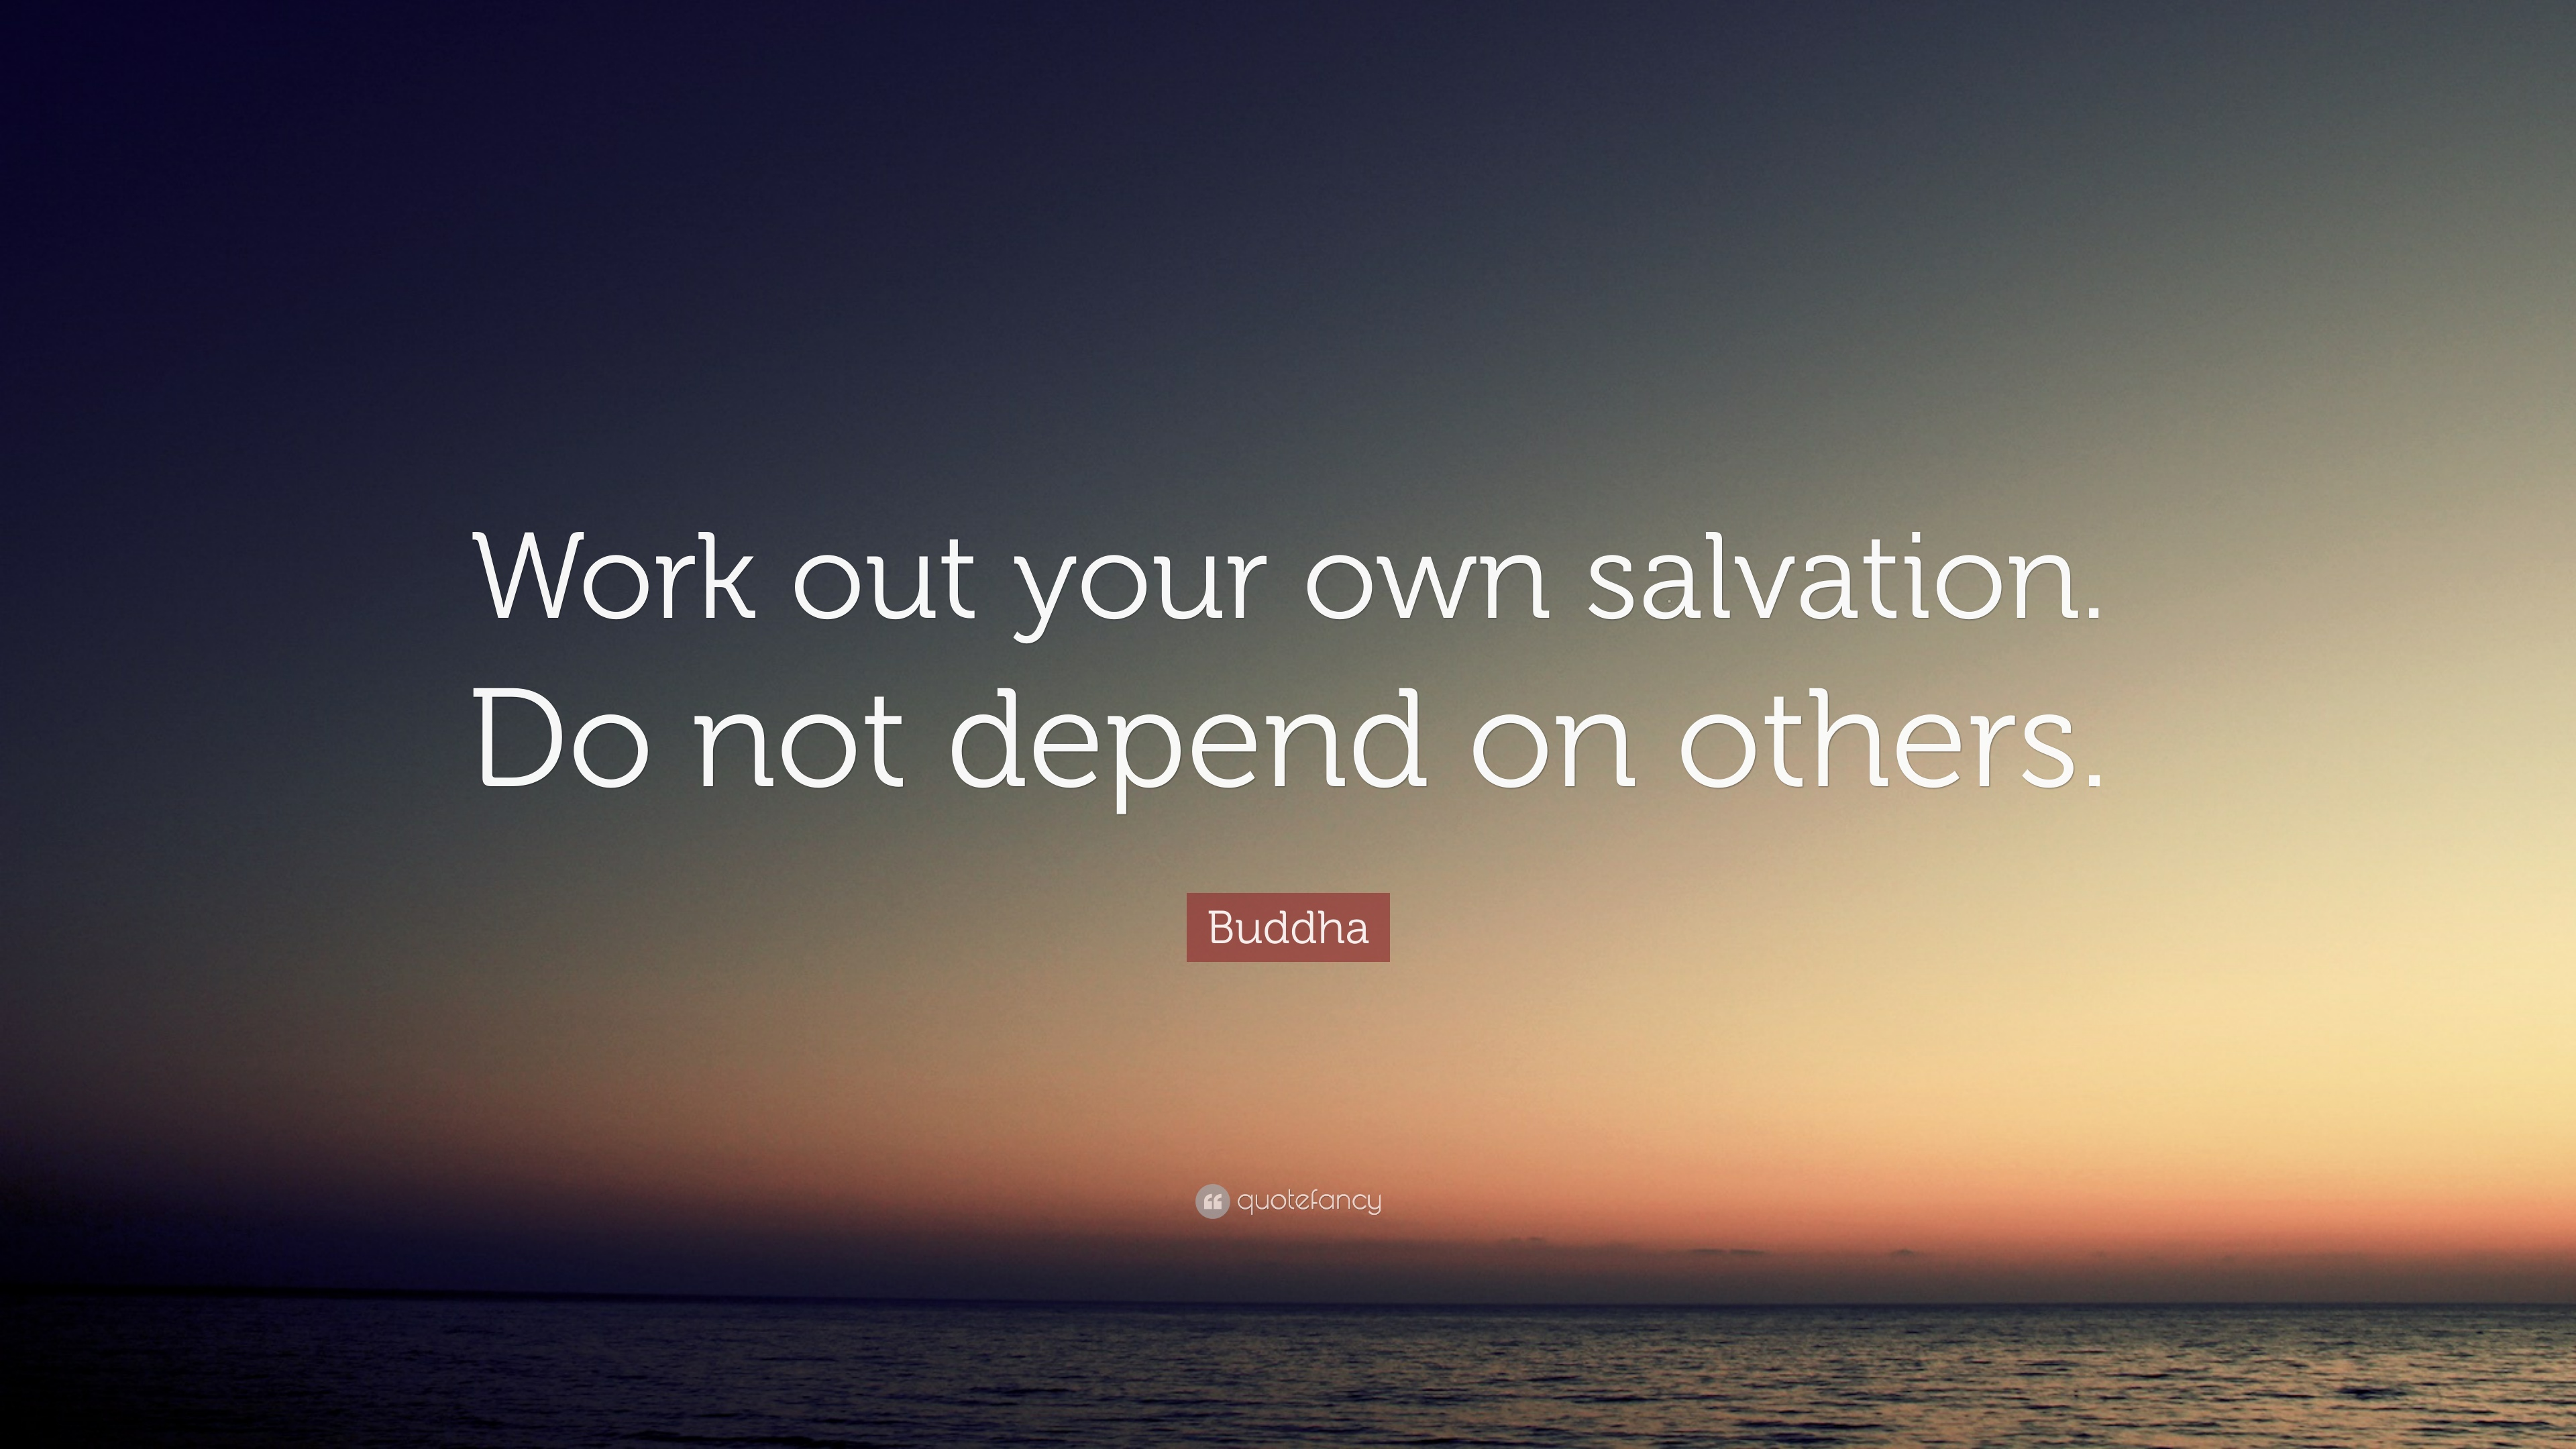 Buddha quote work out your own salvation do not depend on buddha quote work out your own salvation do not depend on others thecheapjerseys Gallery